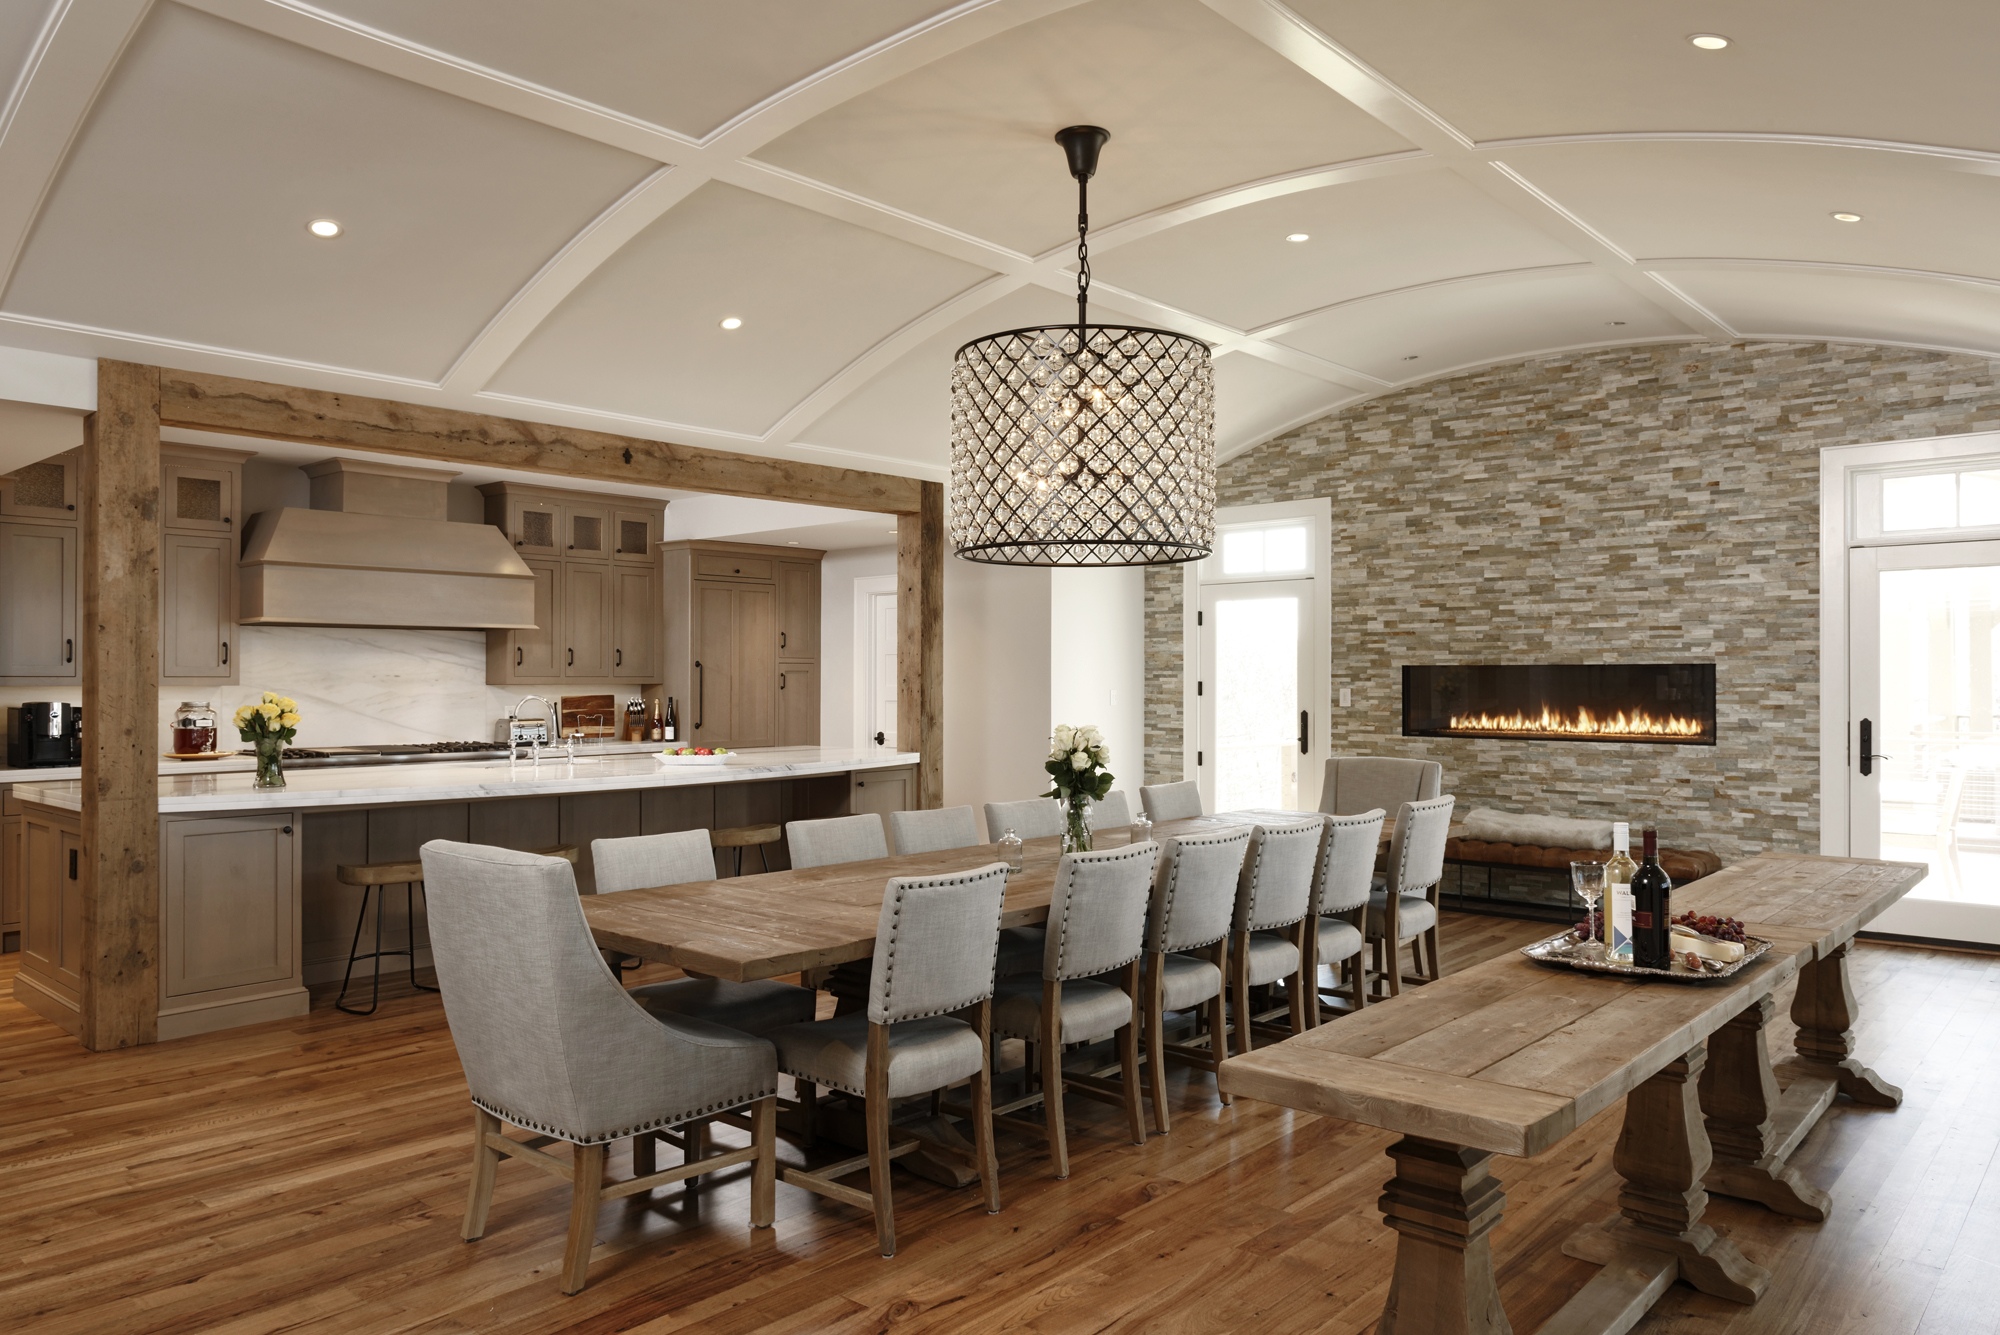 Loudoun county whole house renovation and entertaining addition bowa - Dining room renovation ...